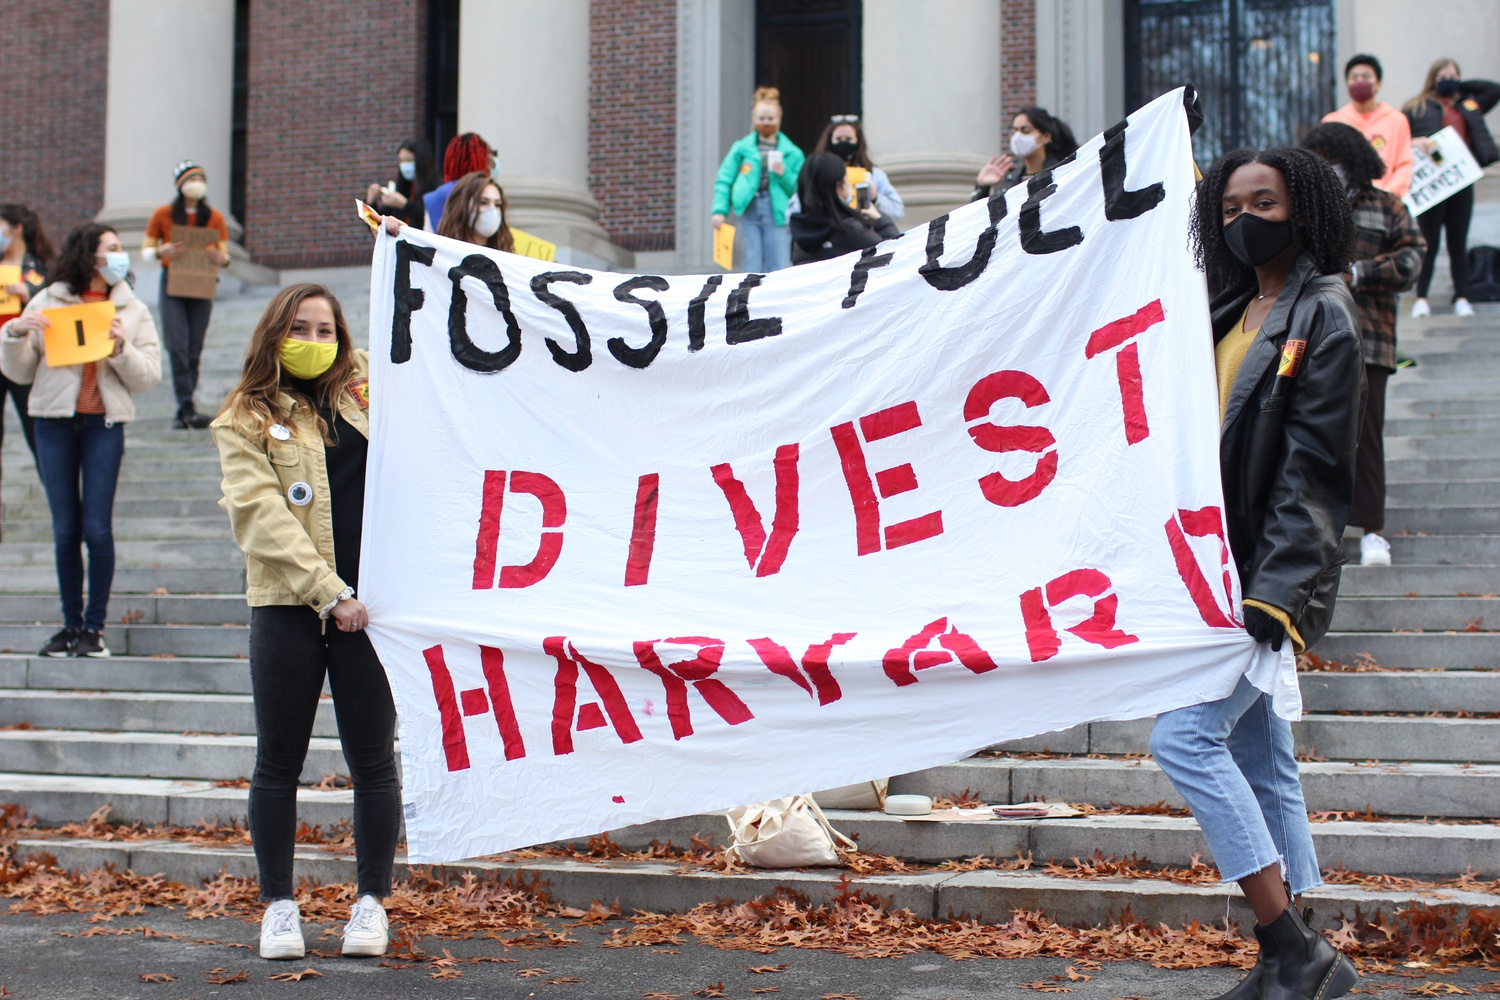 Students on campus held a pro-divestment rally on the steps of Widener Library, one of Divest Harvard's first in-person events this fall.